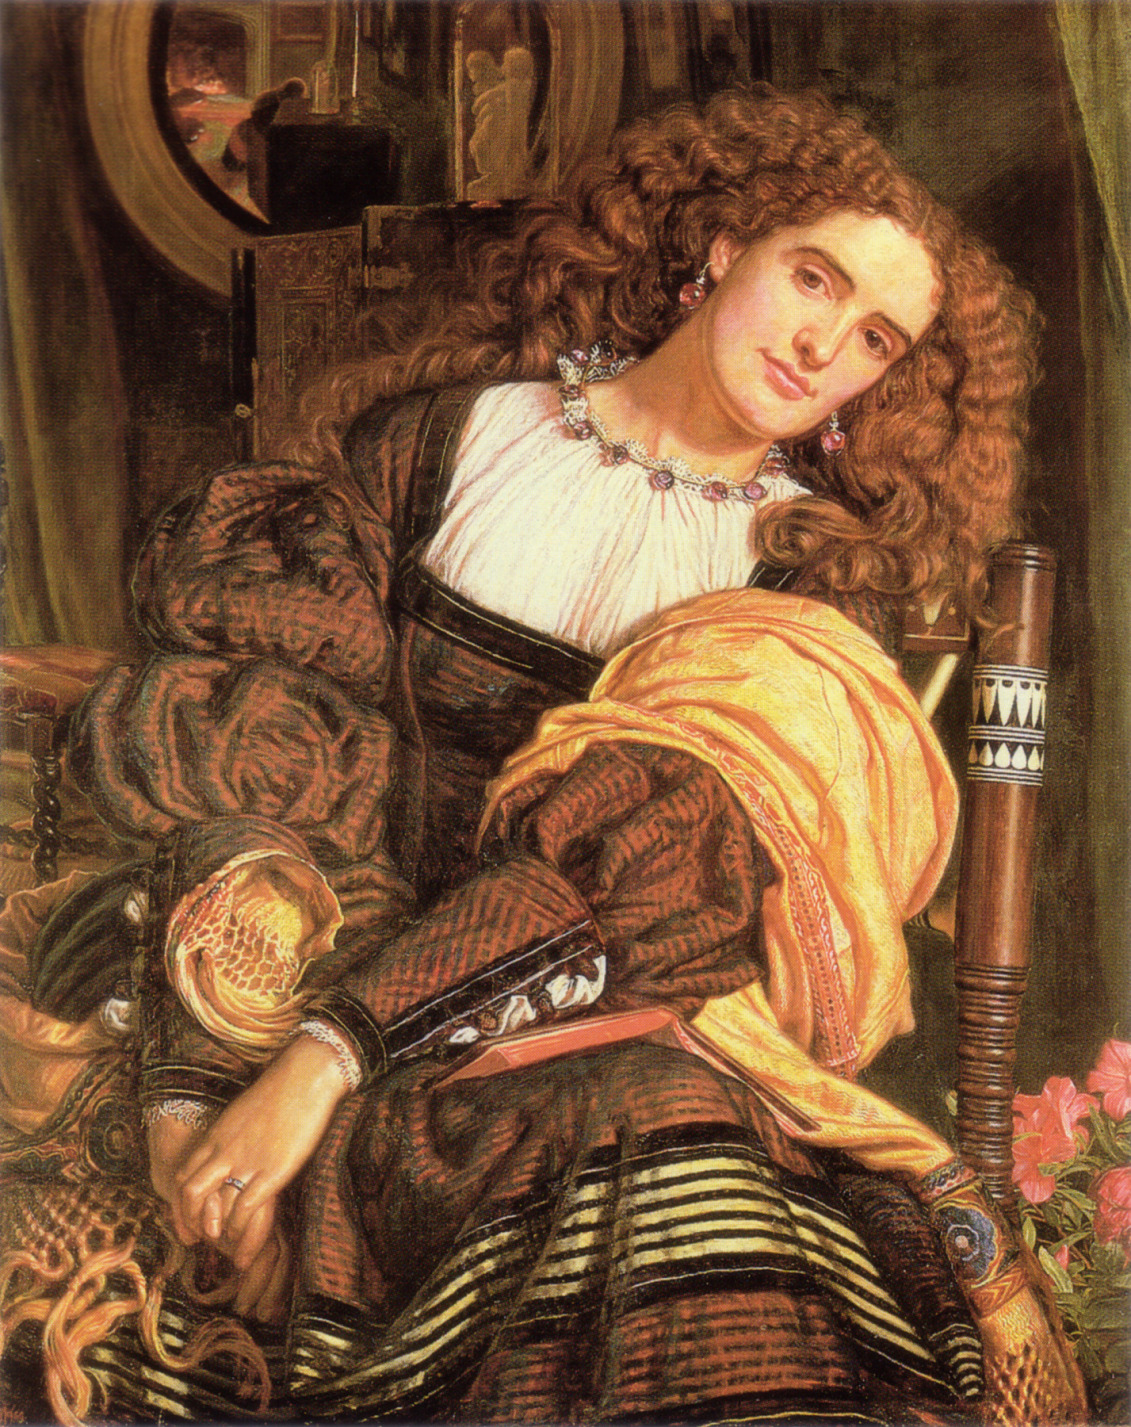 https://upload.wikimedia.org/wikipedia/commons/7/7a/William_Holman_Hunt_-_Il_Dolce_far_Niente.jpg